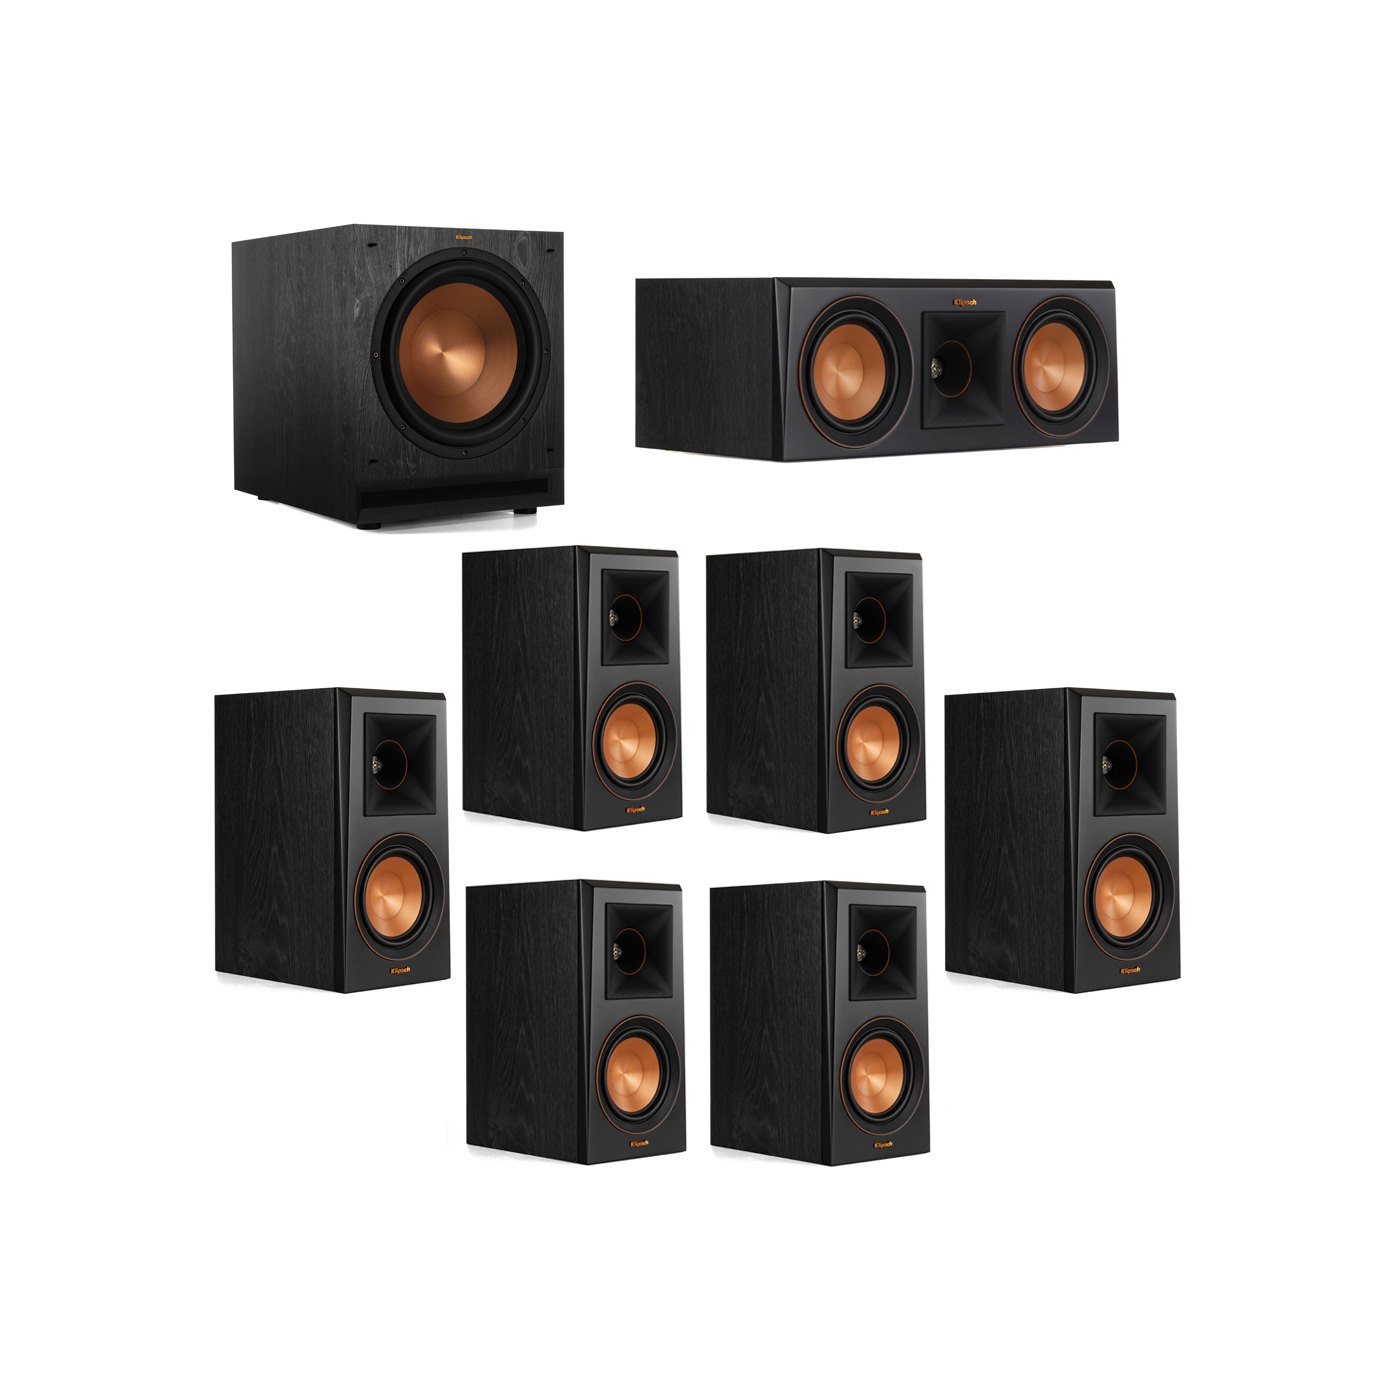 Klipsch 7.1 System with 2 RP-500M Bookshelf Speakers, 1 Klipsch RP-500C Center Speaker, 4 Klipsch RP-500M Surround Speakers, 1 Klipsch SPL-120 Subwoofer